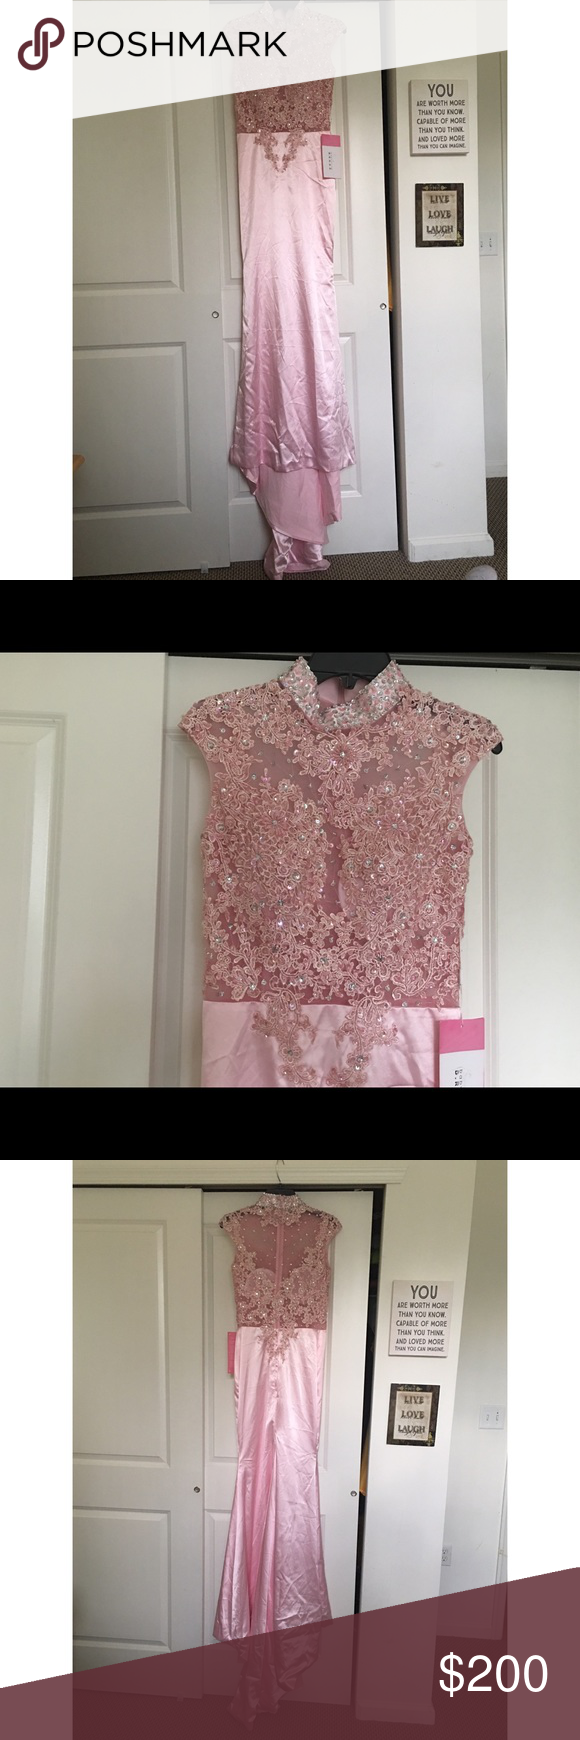 Mermaid Form-Fitted Style Dress Pink/Silky Fabric Lace/Bedazzled Design Size 4 (for non-curvy body types)  Bedazzled Tunic Collar Small Train Trailing Behind Mermaid Style Dress Form-Fitted  Bought this for prom but it was too small for me (my hips are too big) so I'm selling it to make extra money for college! Dresses Prom